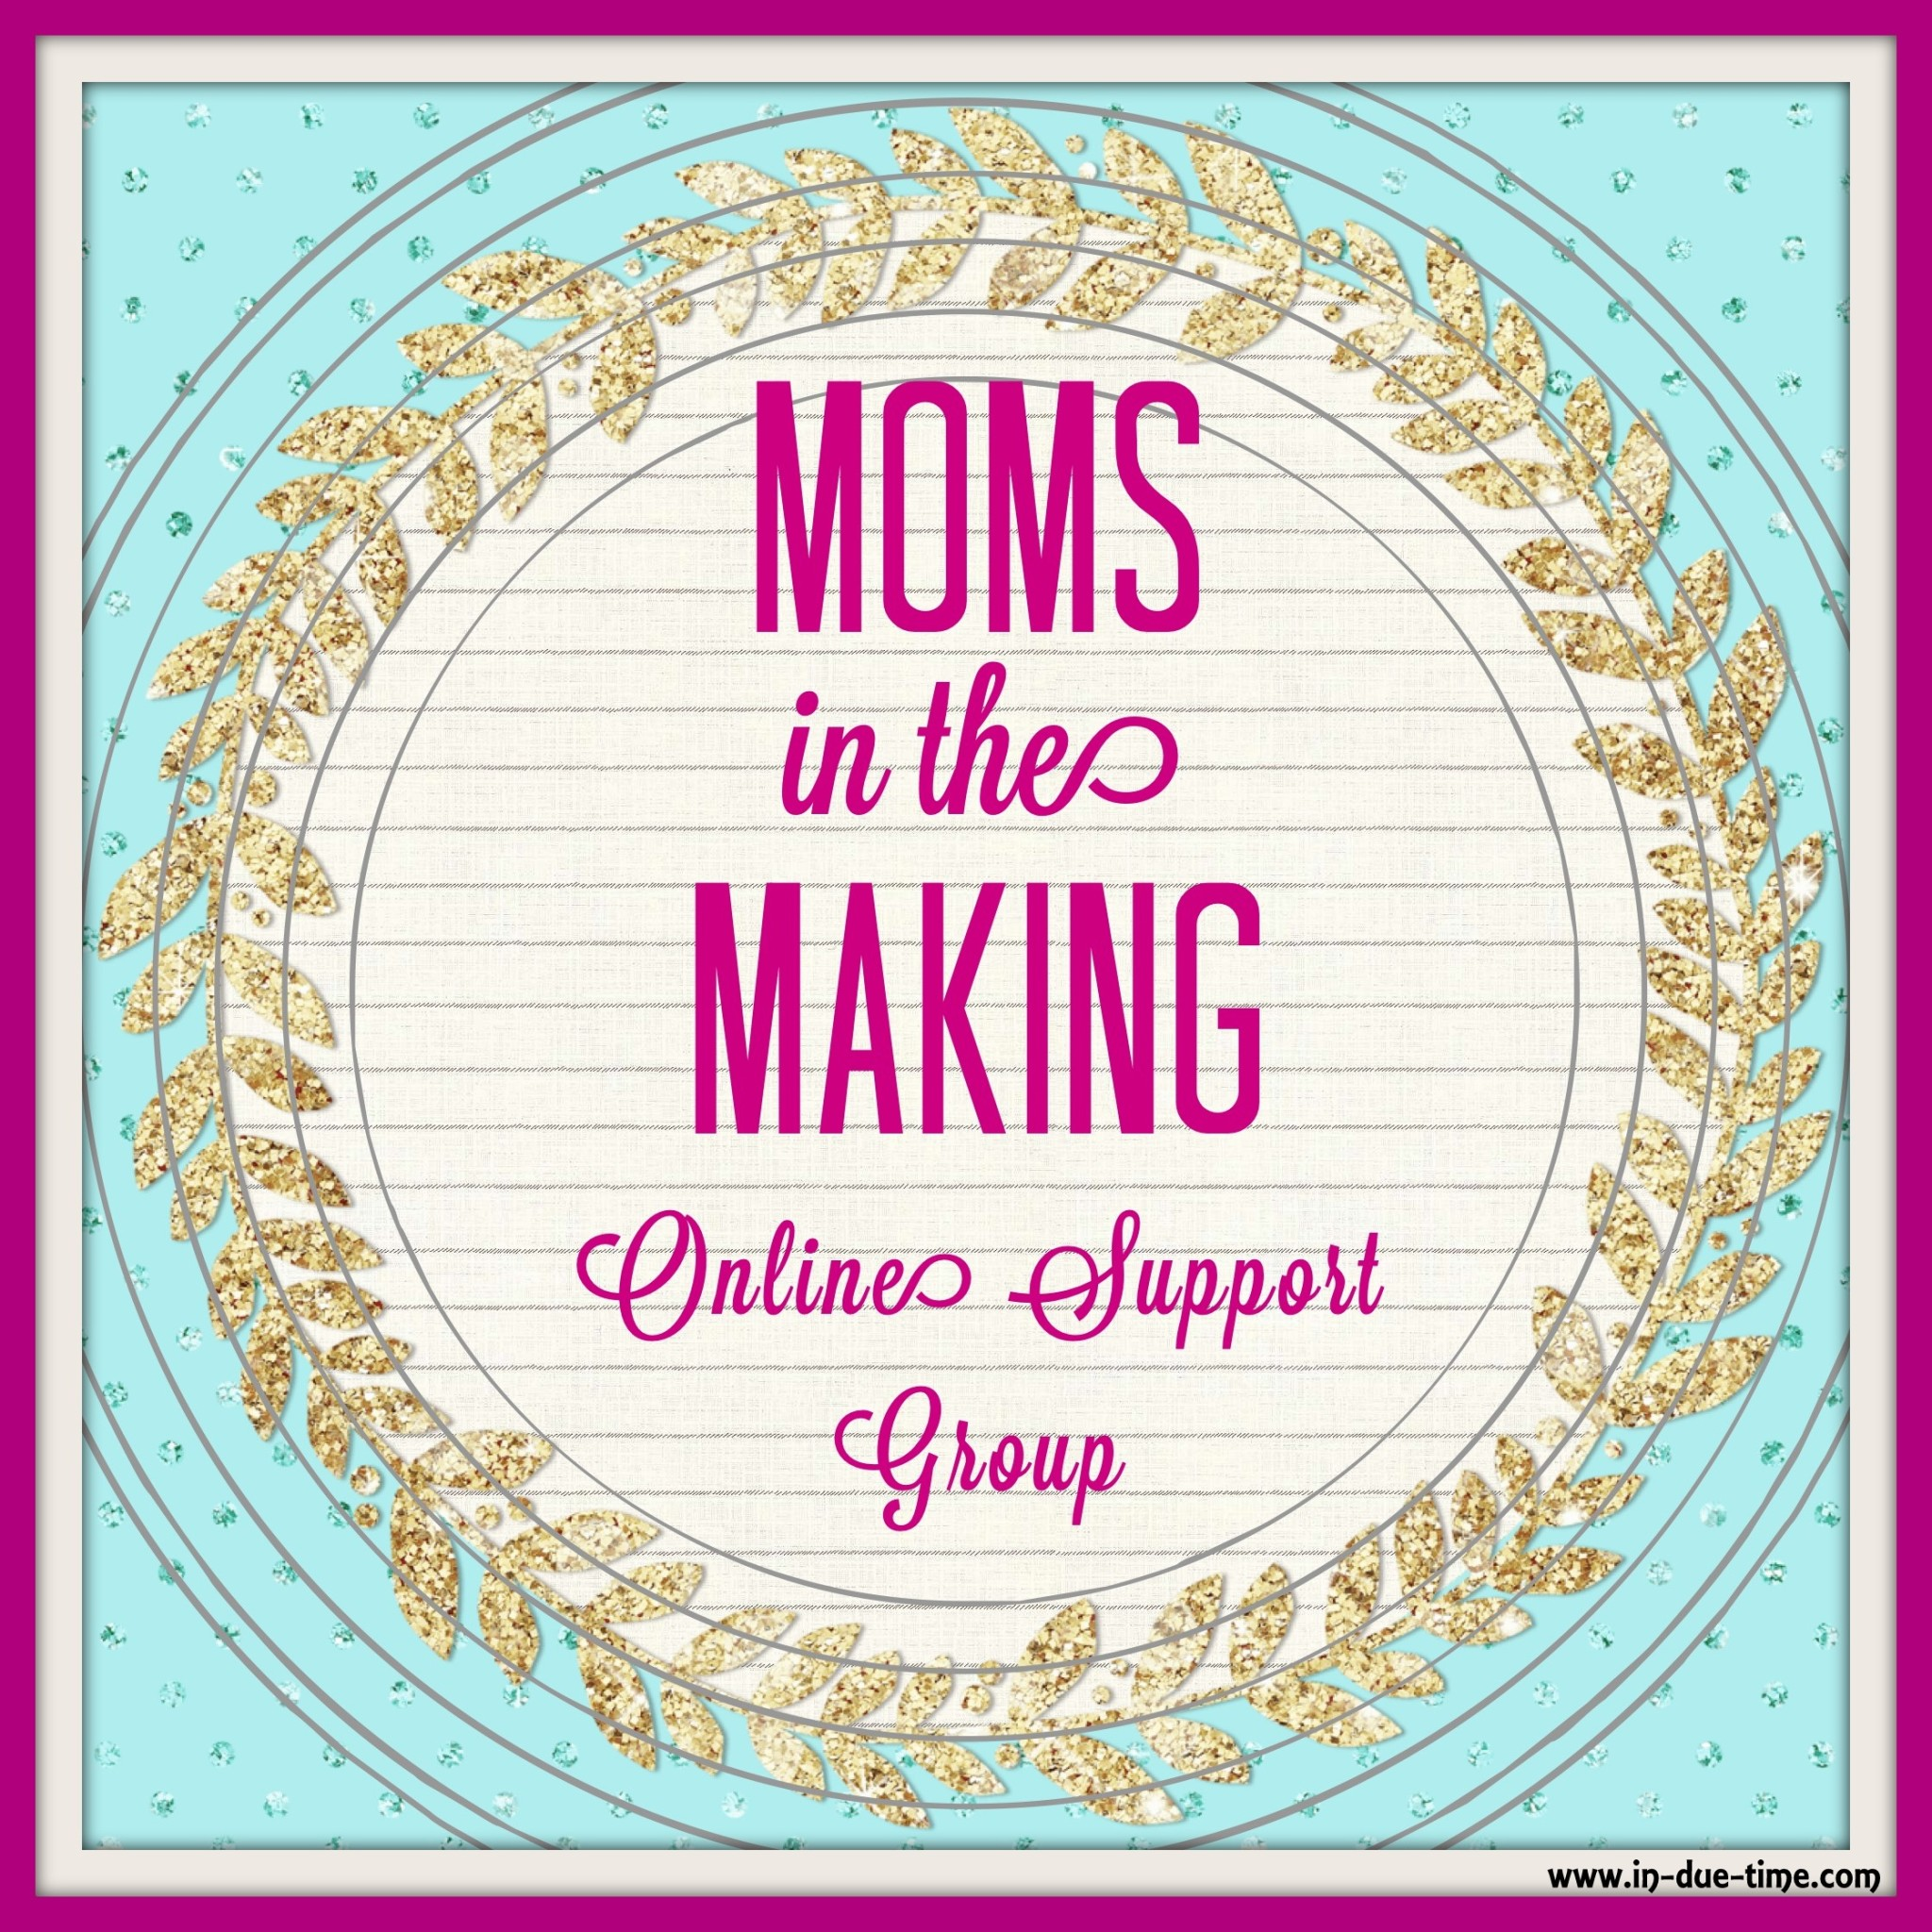 Moms in the Making - Infertility Support Group